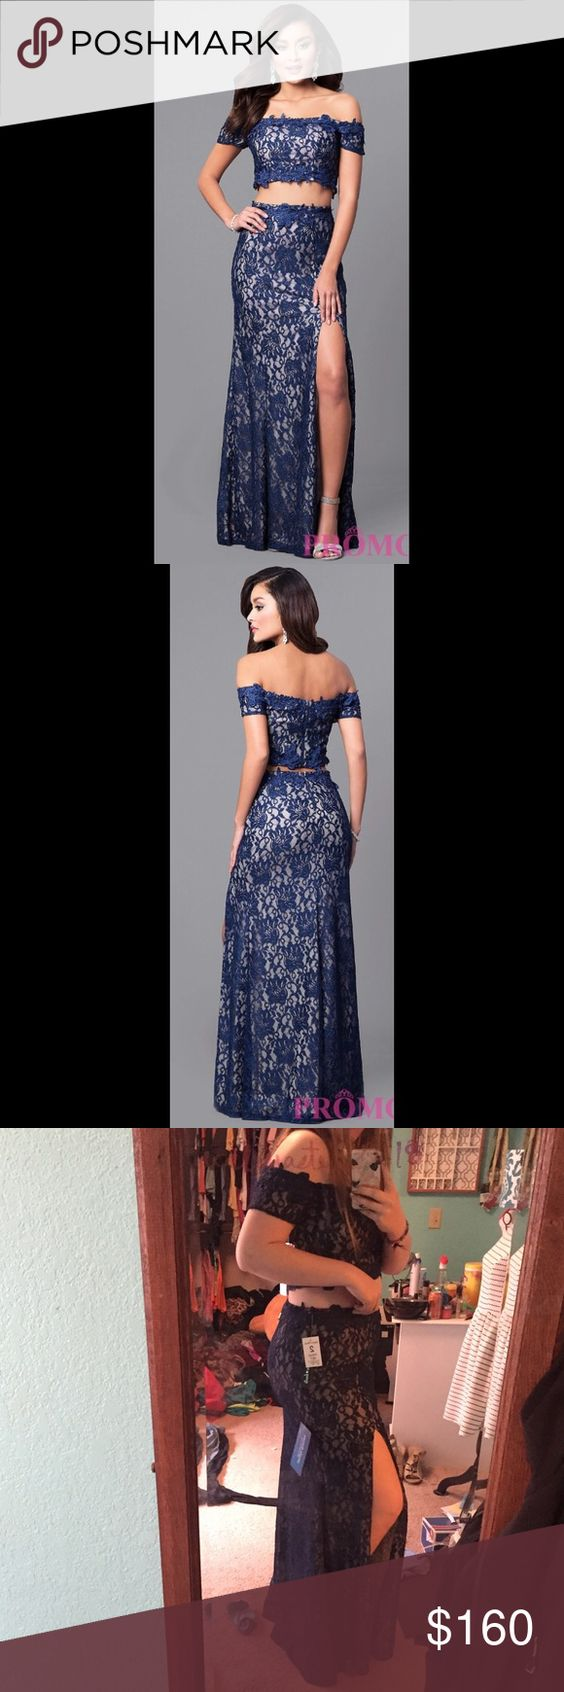 Two piece prom dress nwt blues prom girl dresses and lace